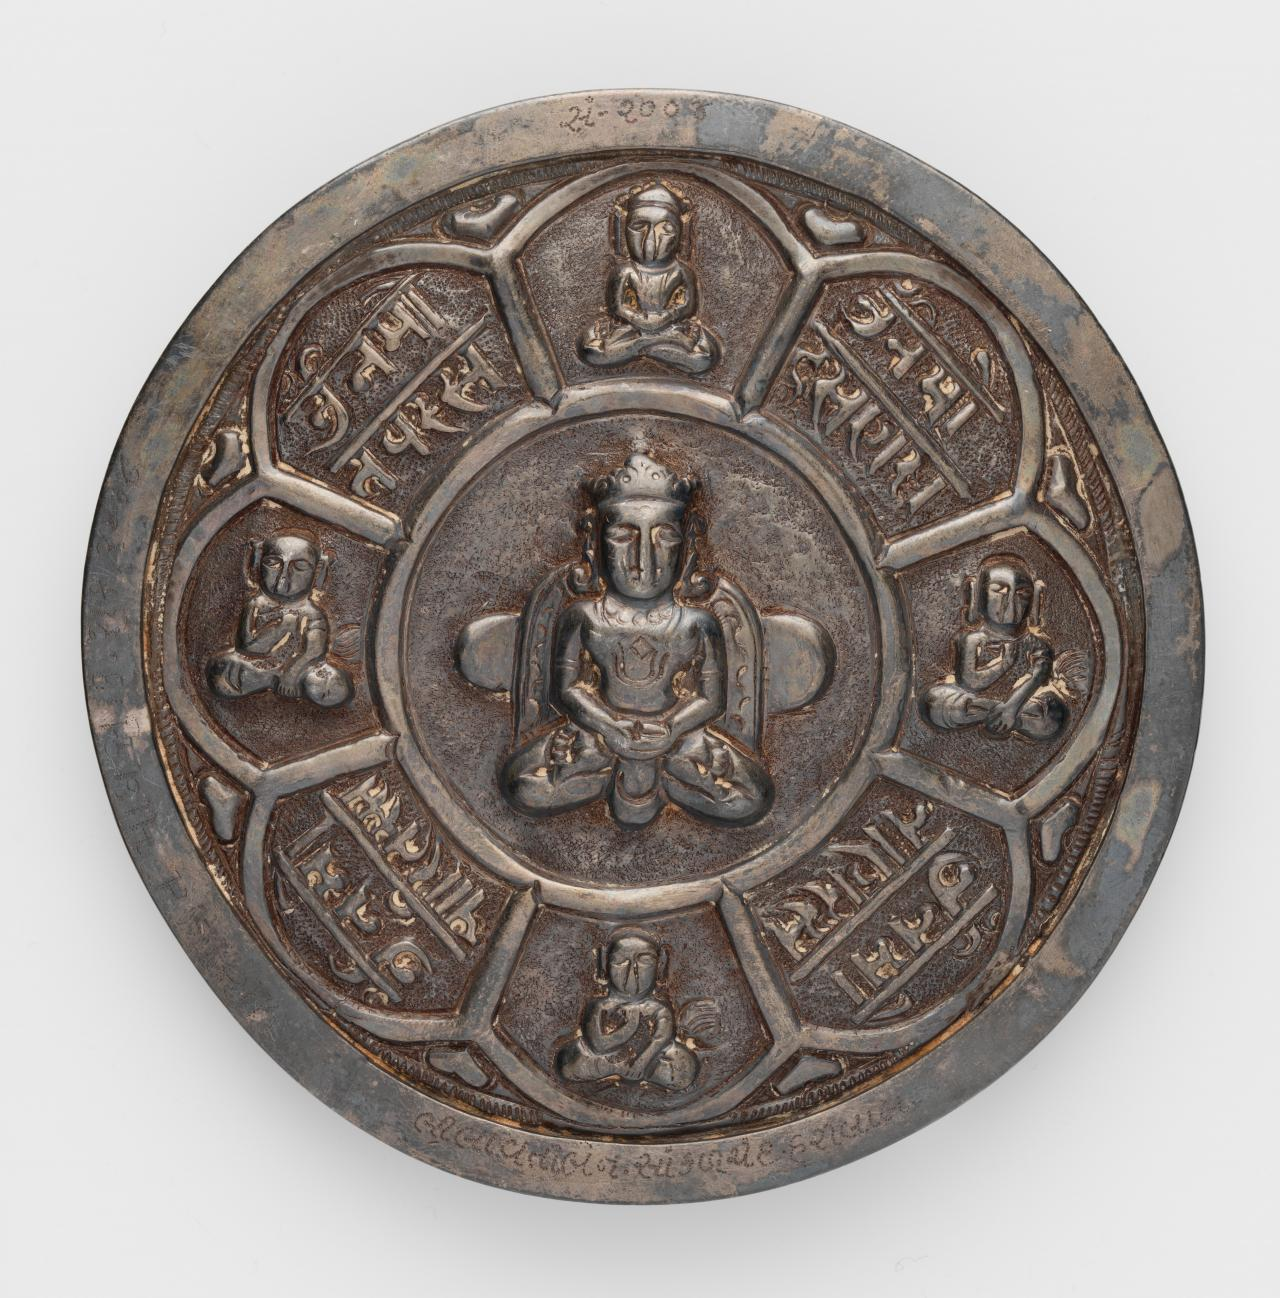 Pilgrimage and devotional plaque (Phul) with Jain figures